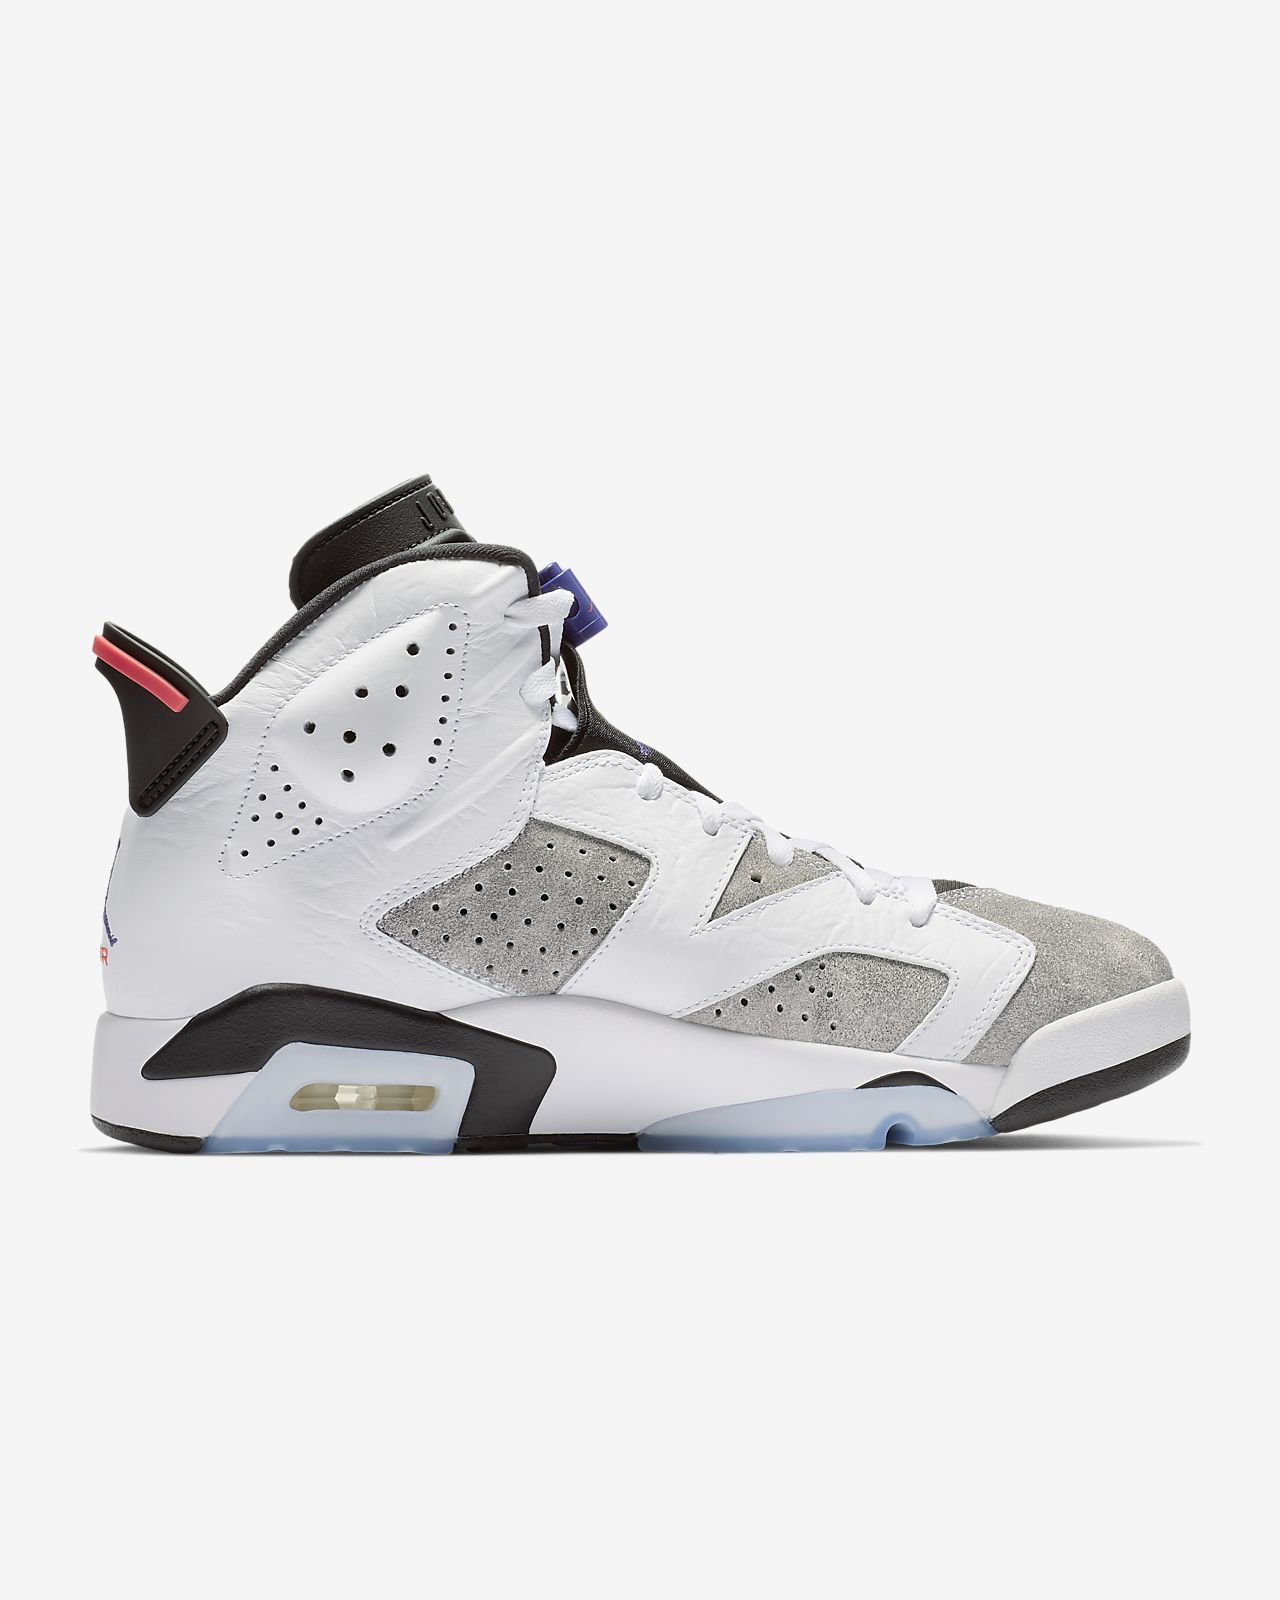 a6e3ad5b84c2 Air Jordan 6 Retro Men s Shoe. Nike.com